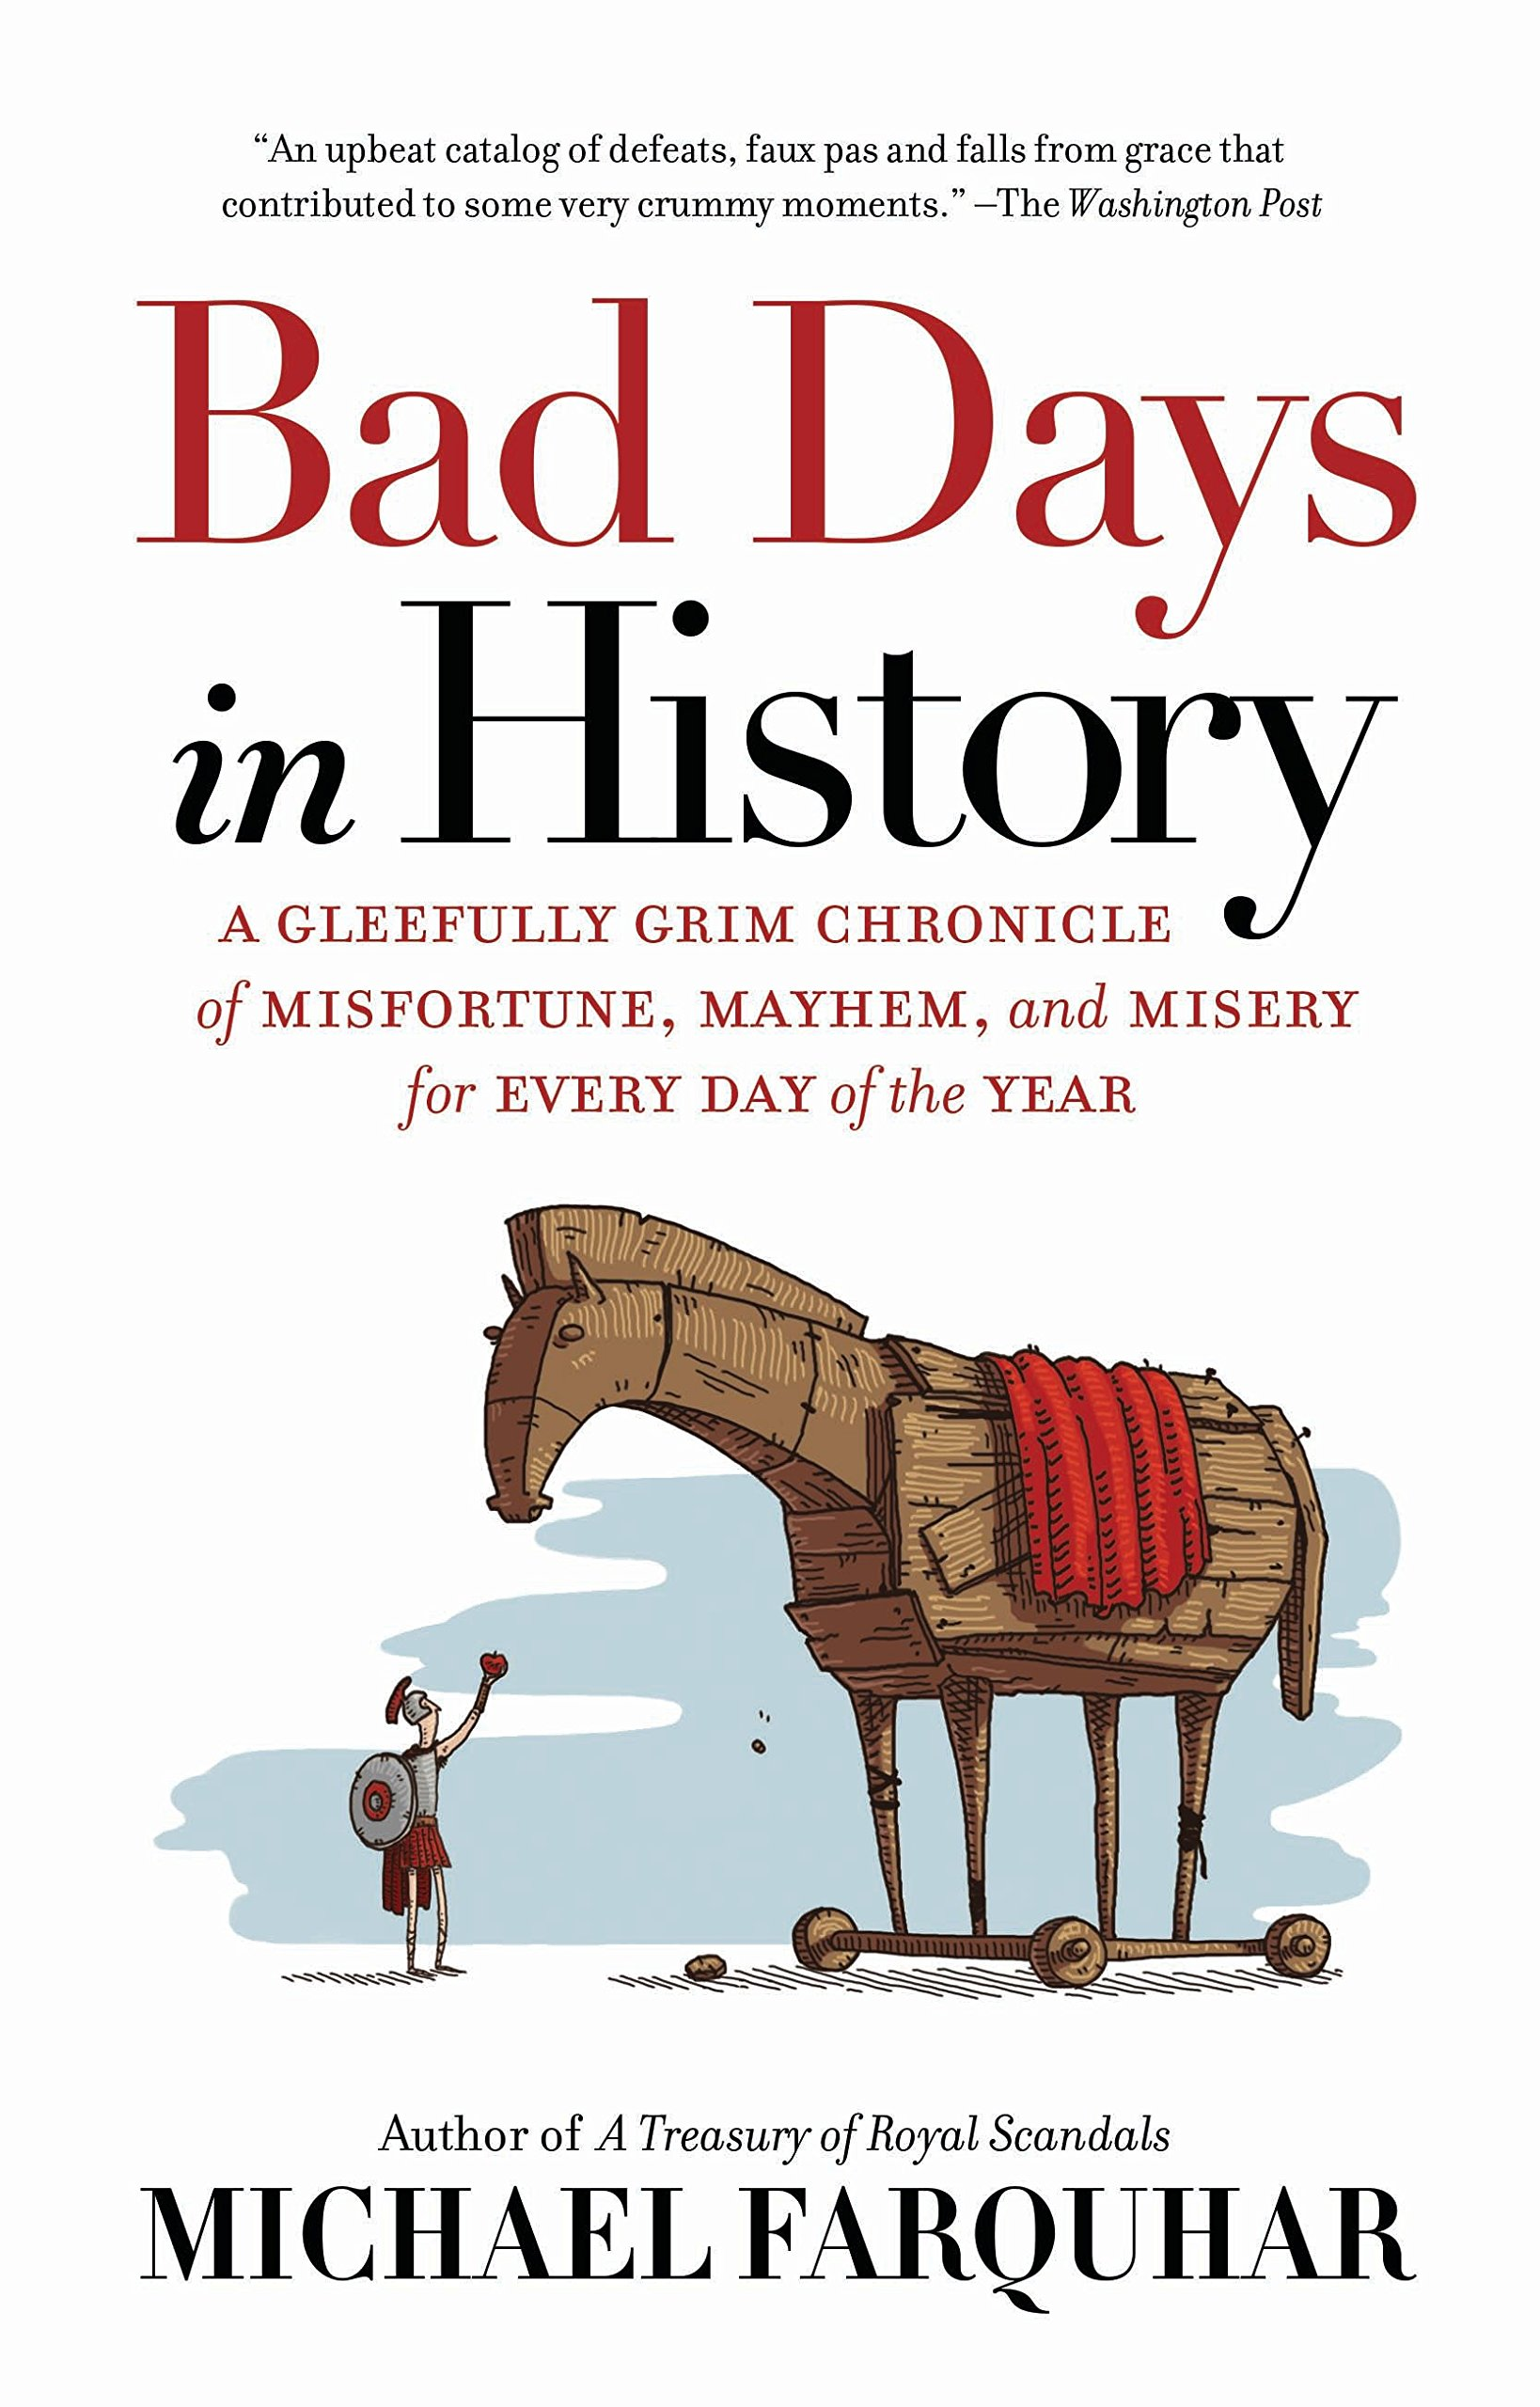 ... in History: A Gleefully Grim Chronicle of Misfortune, Mayhem, and  Misery for Every Day of the Year: Michael Farquhar: 9781426218071:  Amazon.com: Books